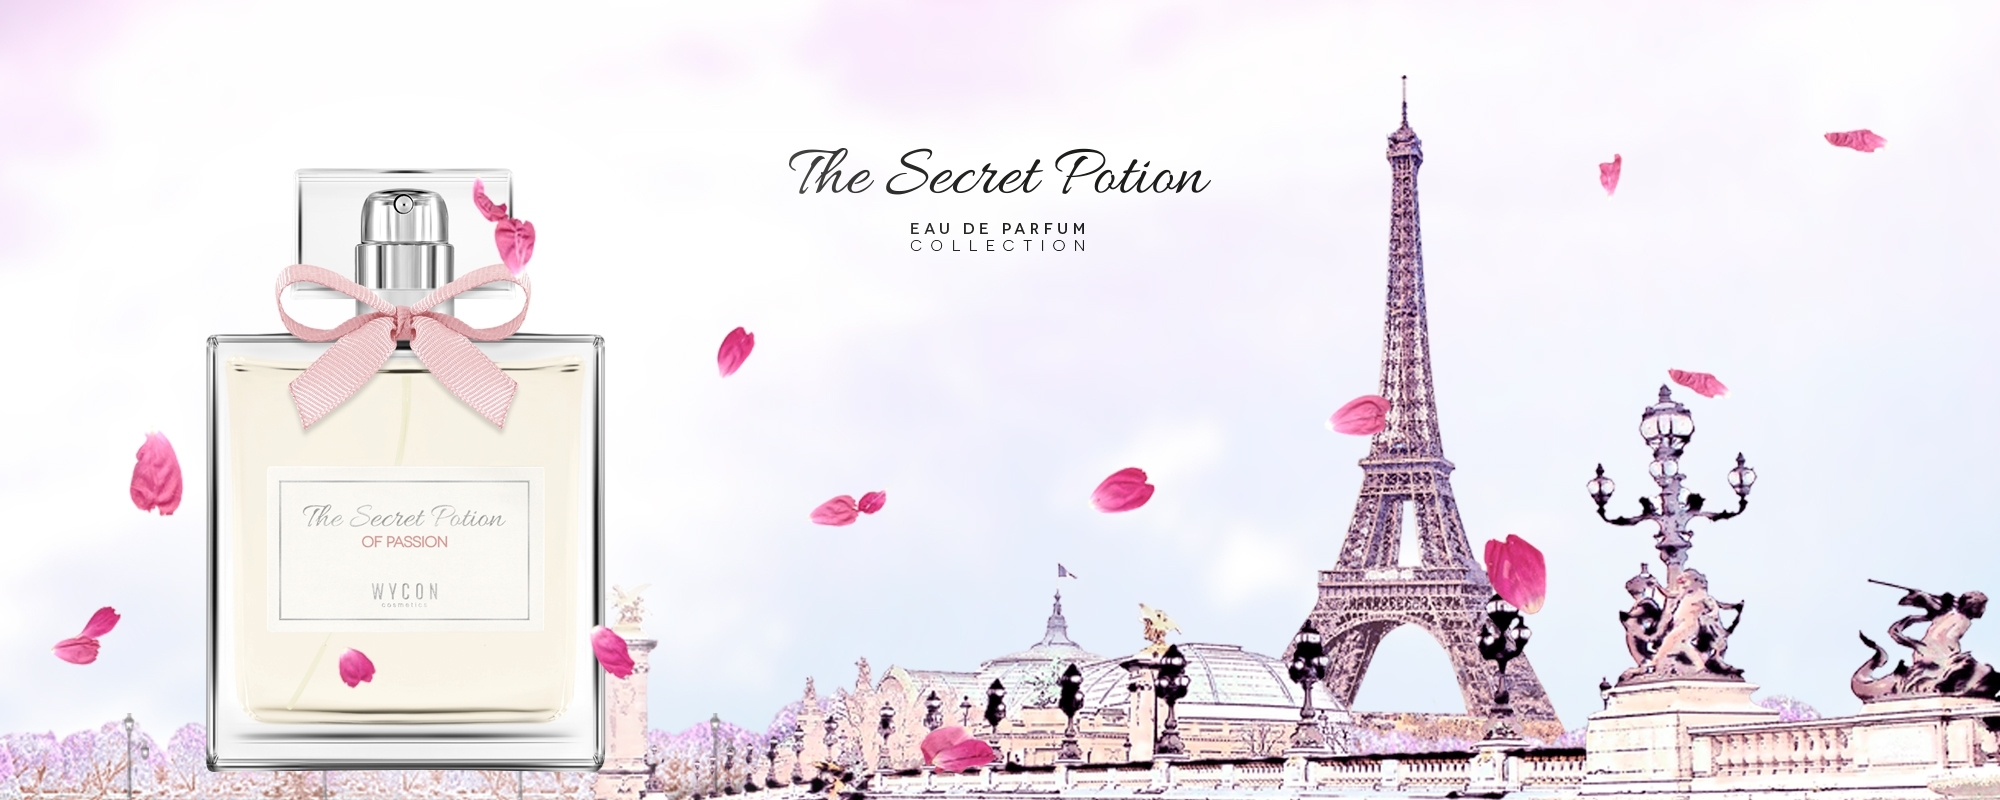 Wycon cosmetics presenta The Secret Potion Nove mix olfattivi per riscaldare le fredde notti invernali